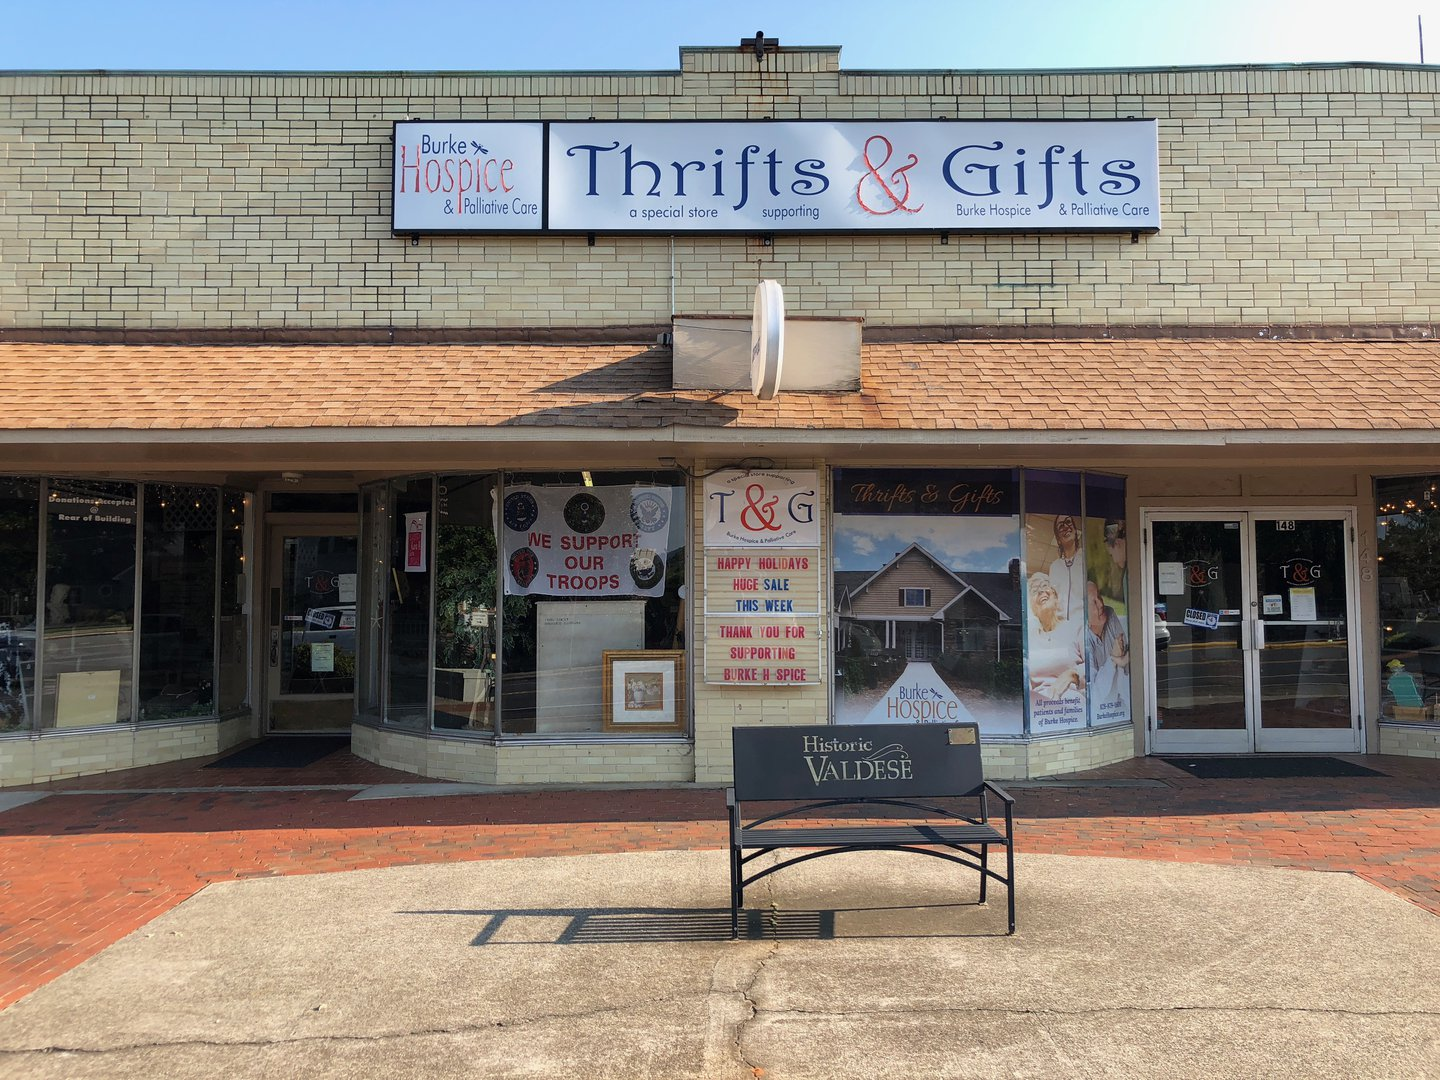 Thrifts & Gifts Storefront